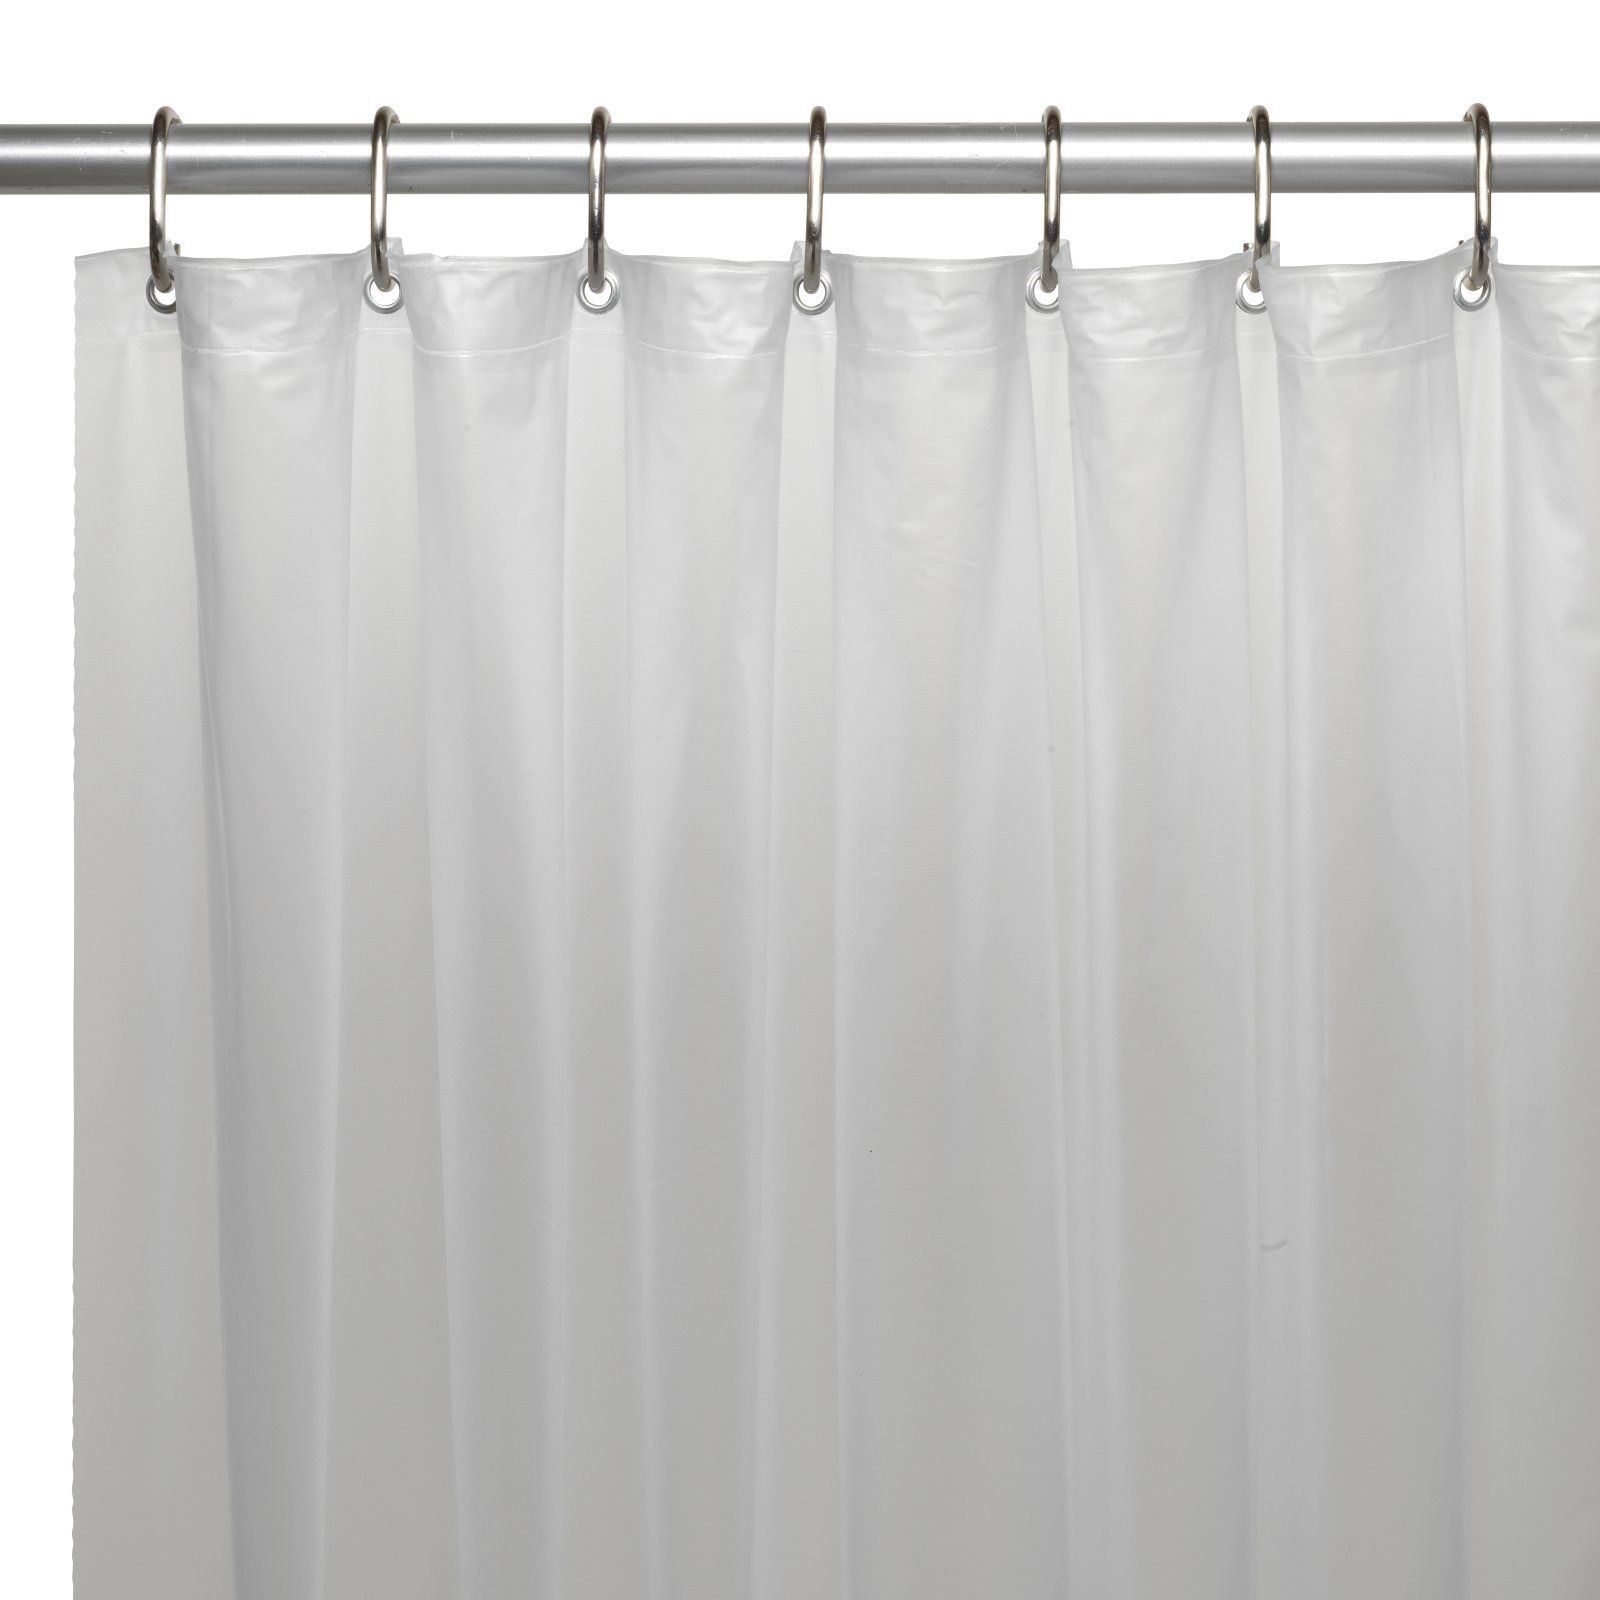 Carnation Home Fashions Vinyl Shower Curtain Liner With Metal Grommets Frosty Clear Vinyl Shower Curtains Shower Stall Shower Curtain